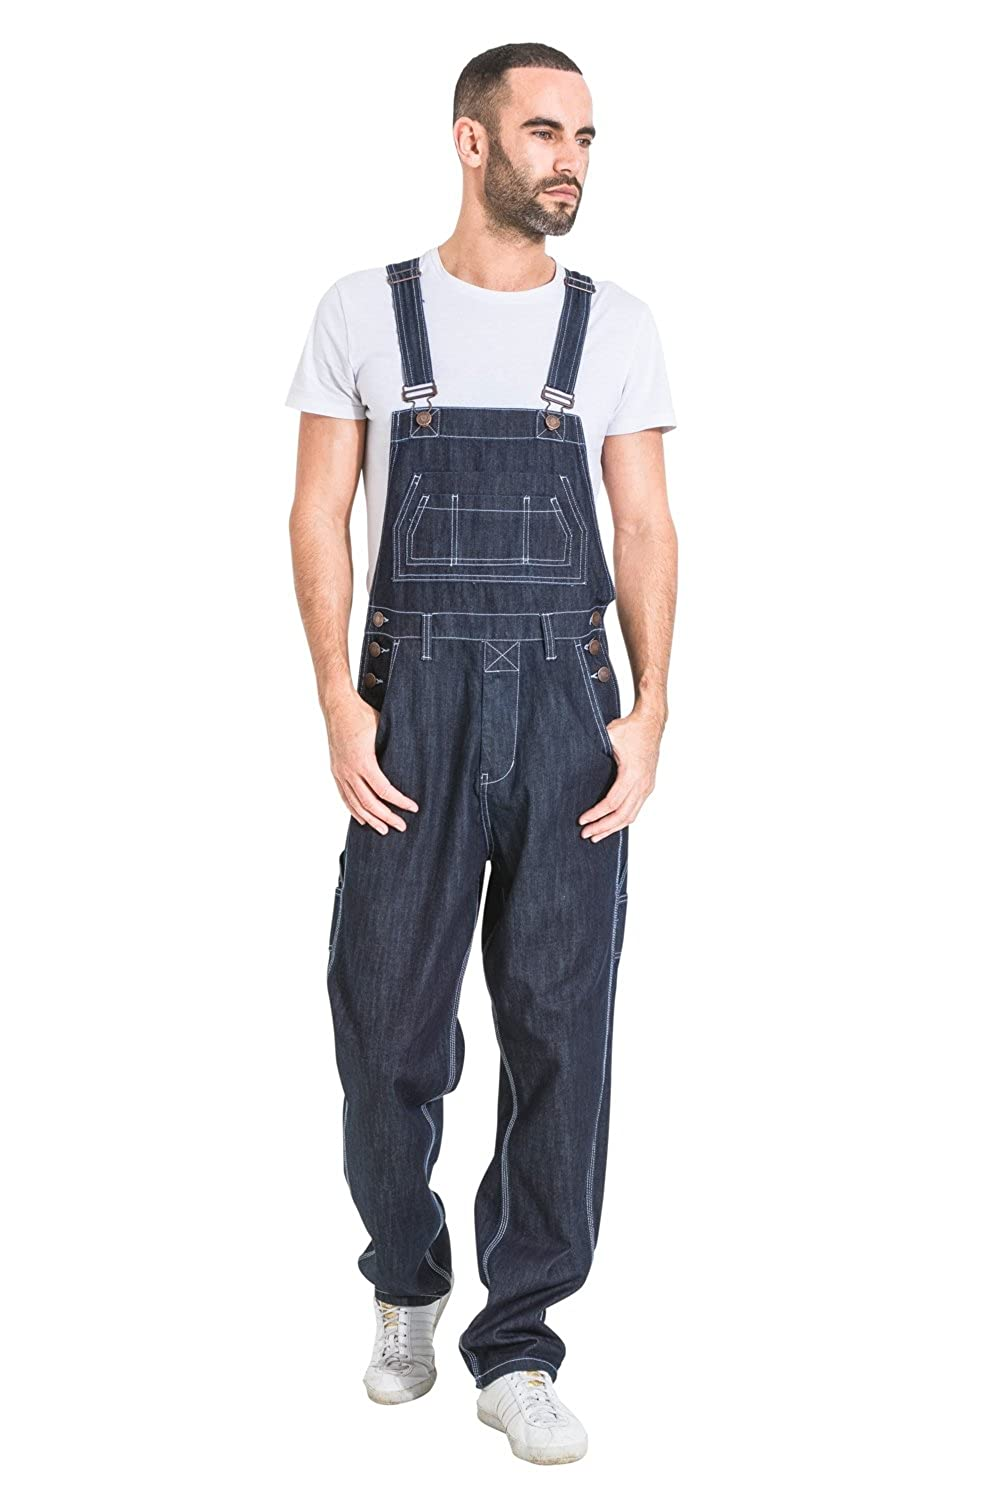 G8 One Mens Loose Fit Denim Dungarees - Dark Blue Value Overalls Cheap Dungarees MENSVALUEDARKBLUE-L-36